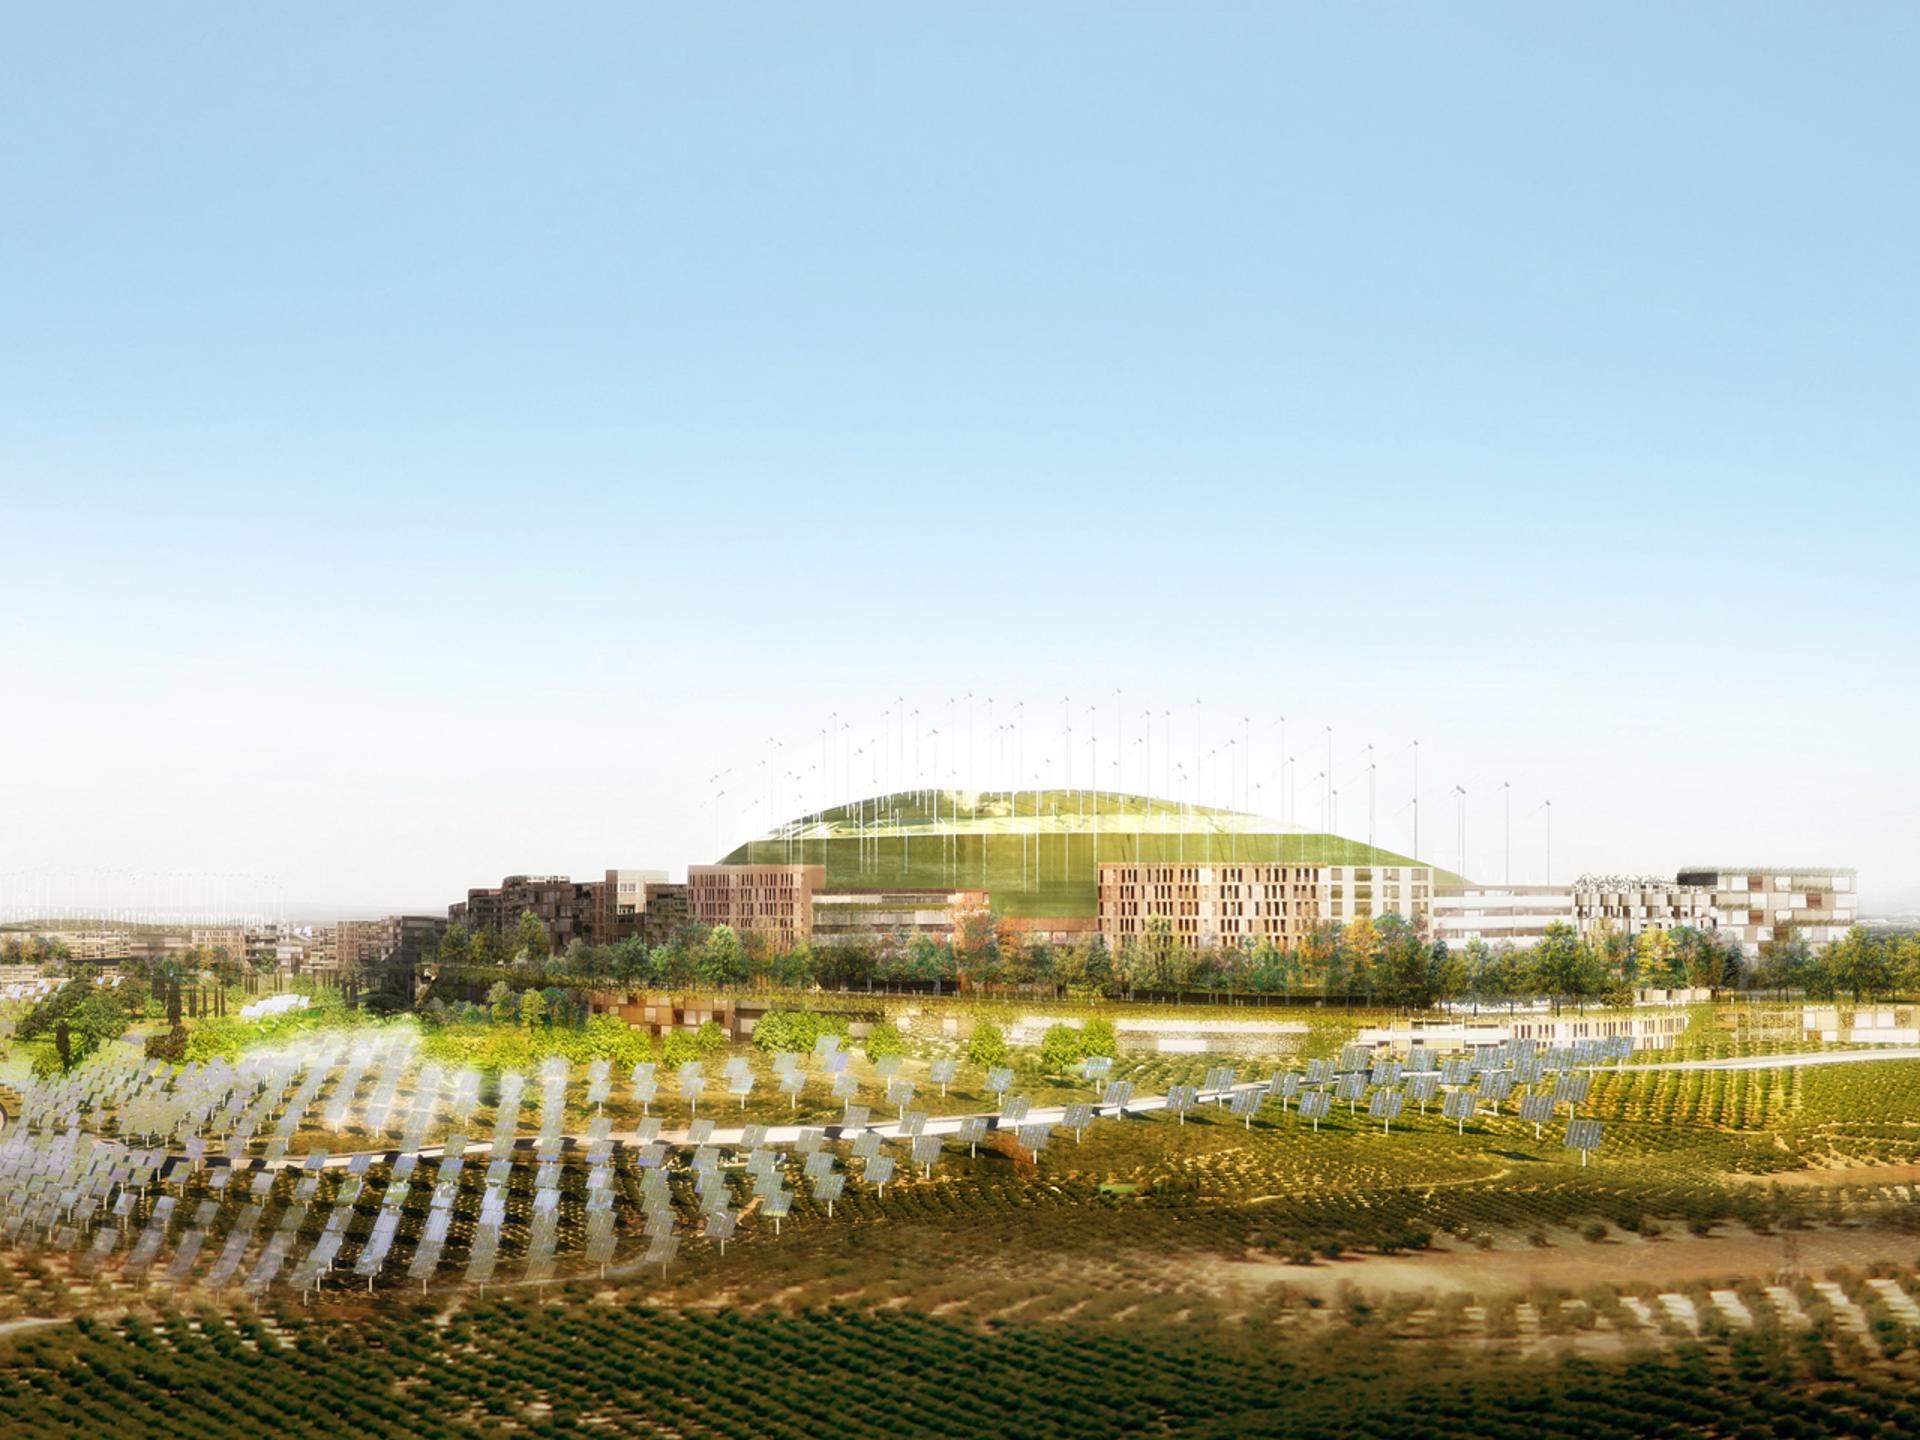 Mvrdv Montecorvo Eco City